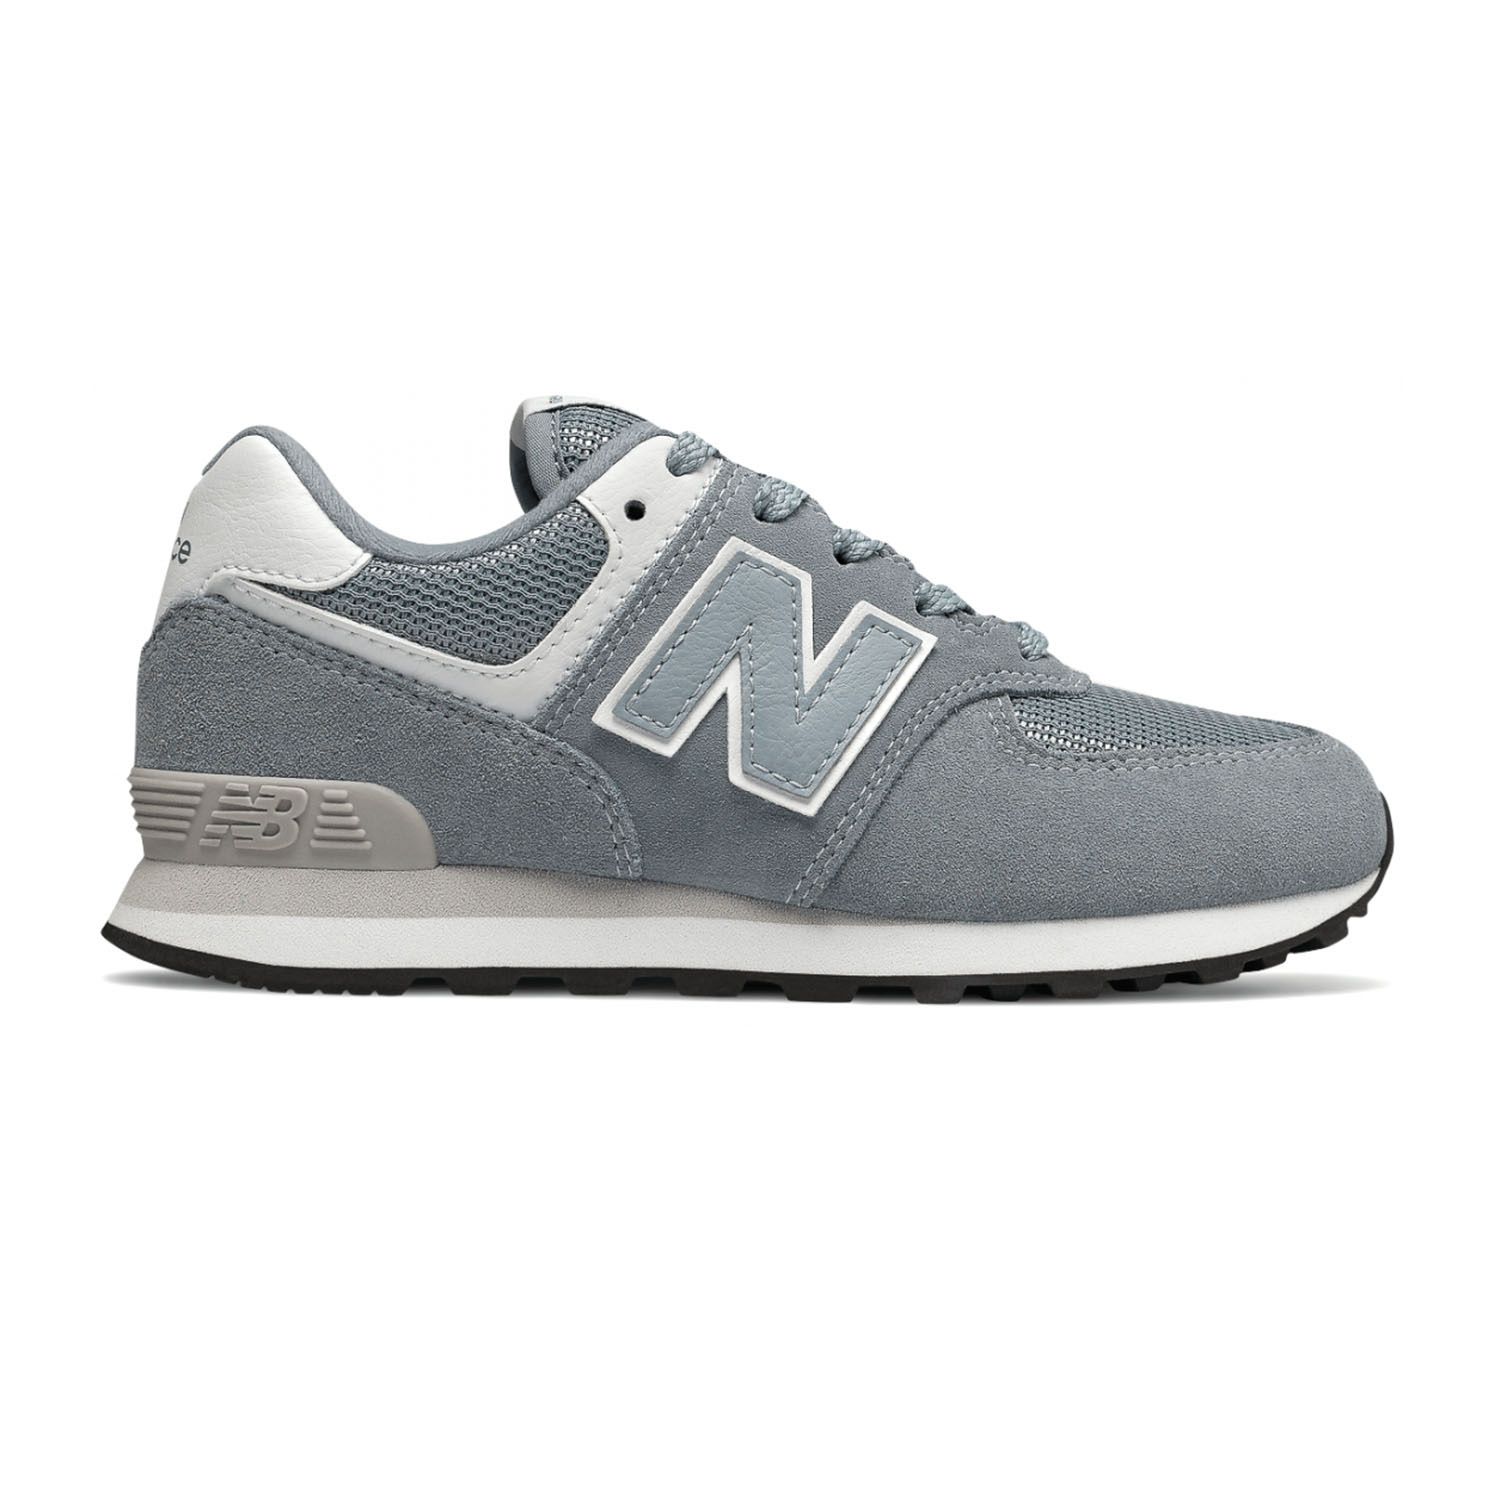 New Balance 574 GS ( GC574EY ) παπούτσια    παιδί    σχολικά  size 35 5 40    casual